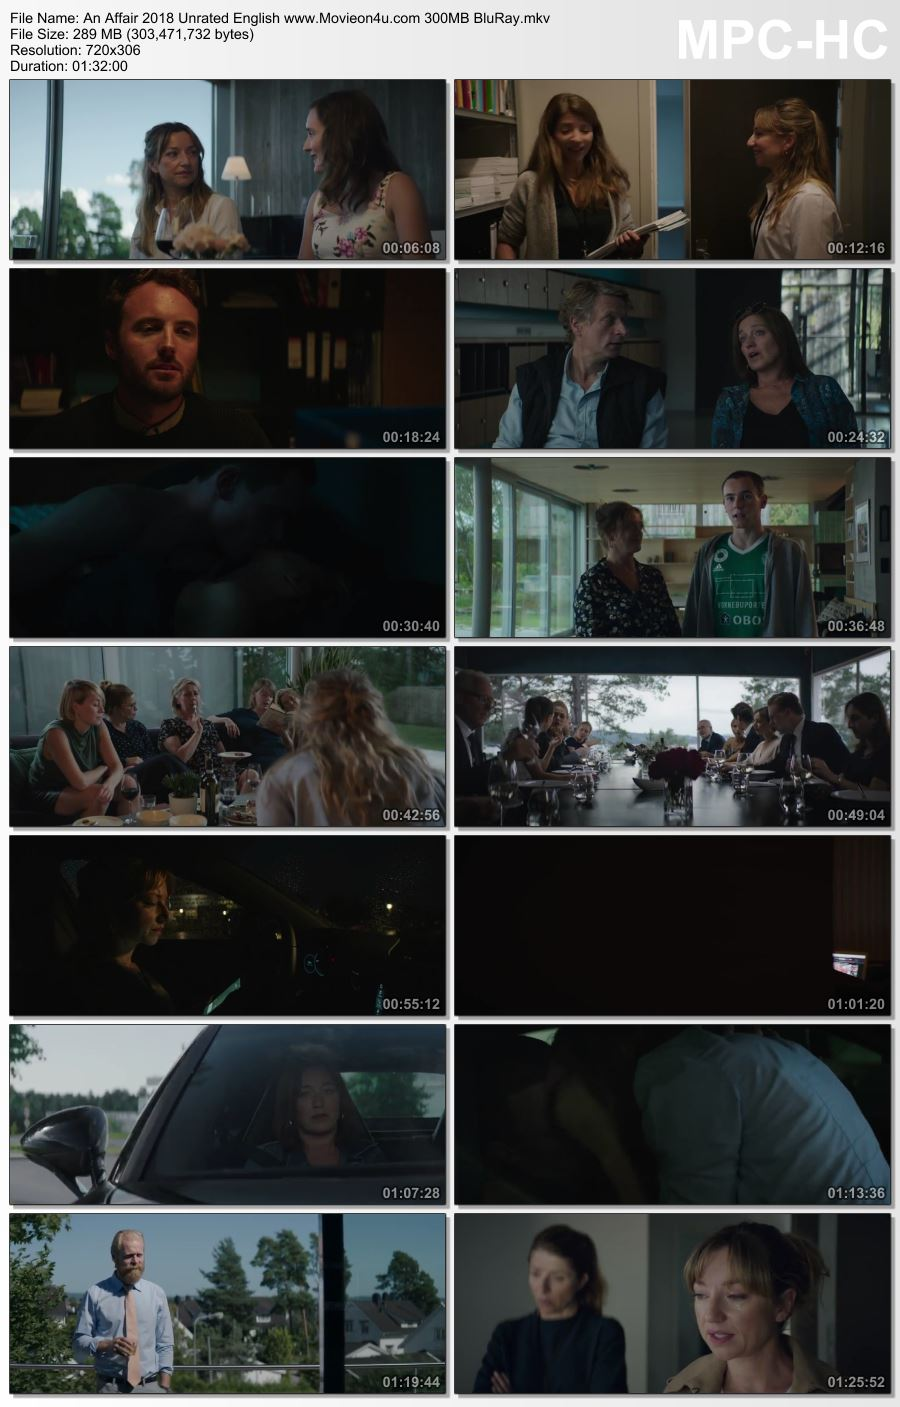 An Affair 2018 Unrated English 300MB BluRay x264 480p Download HD